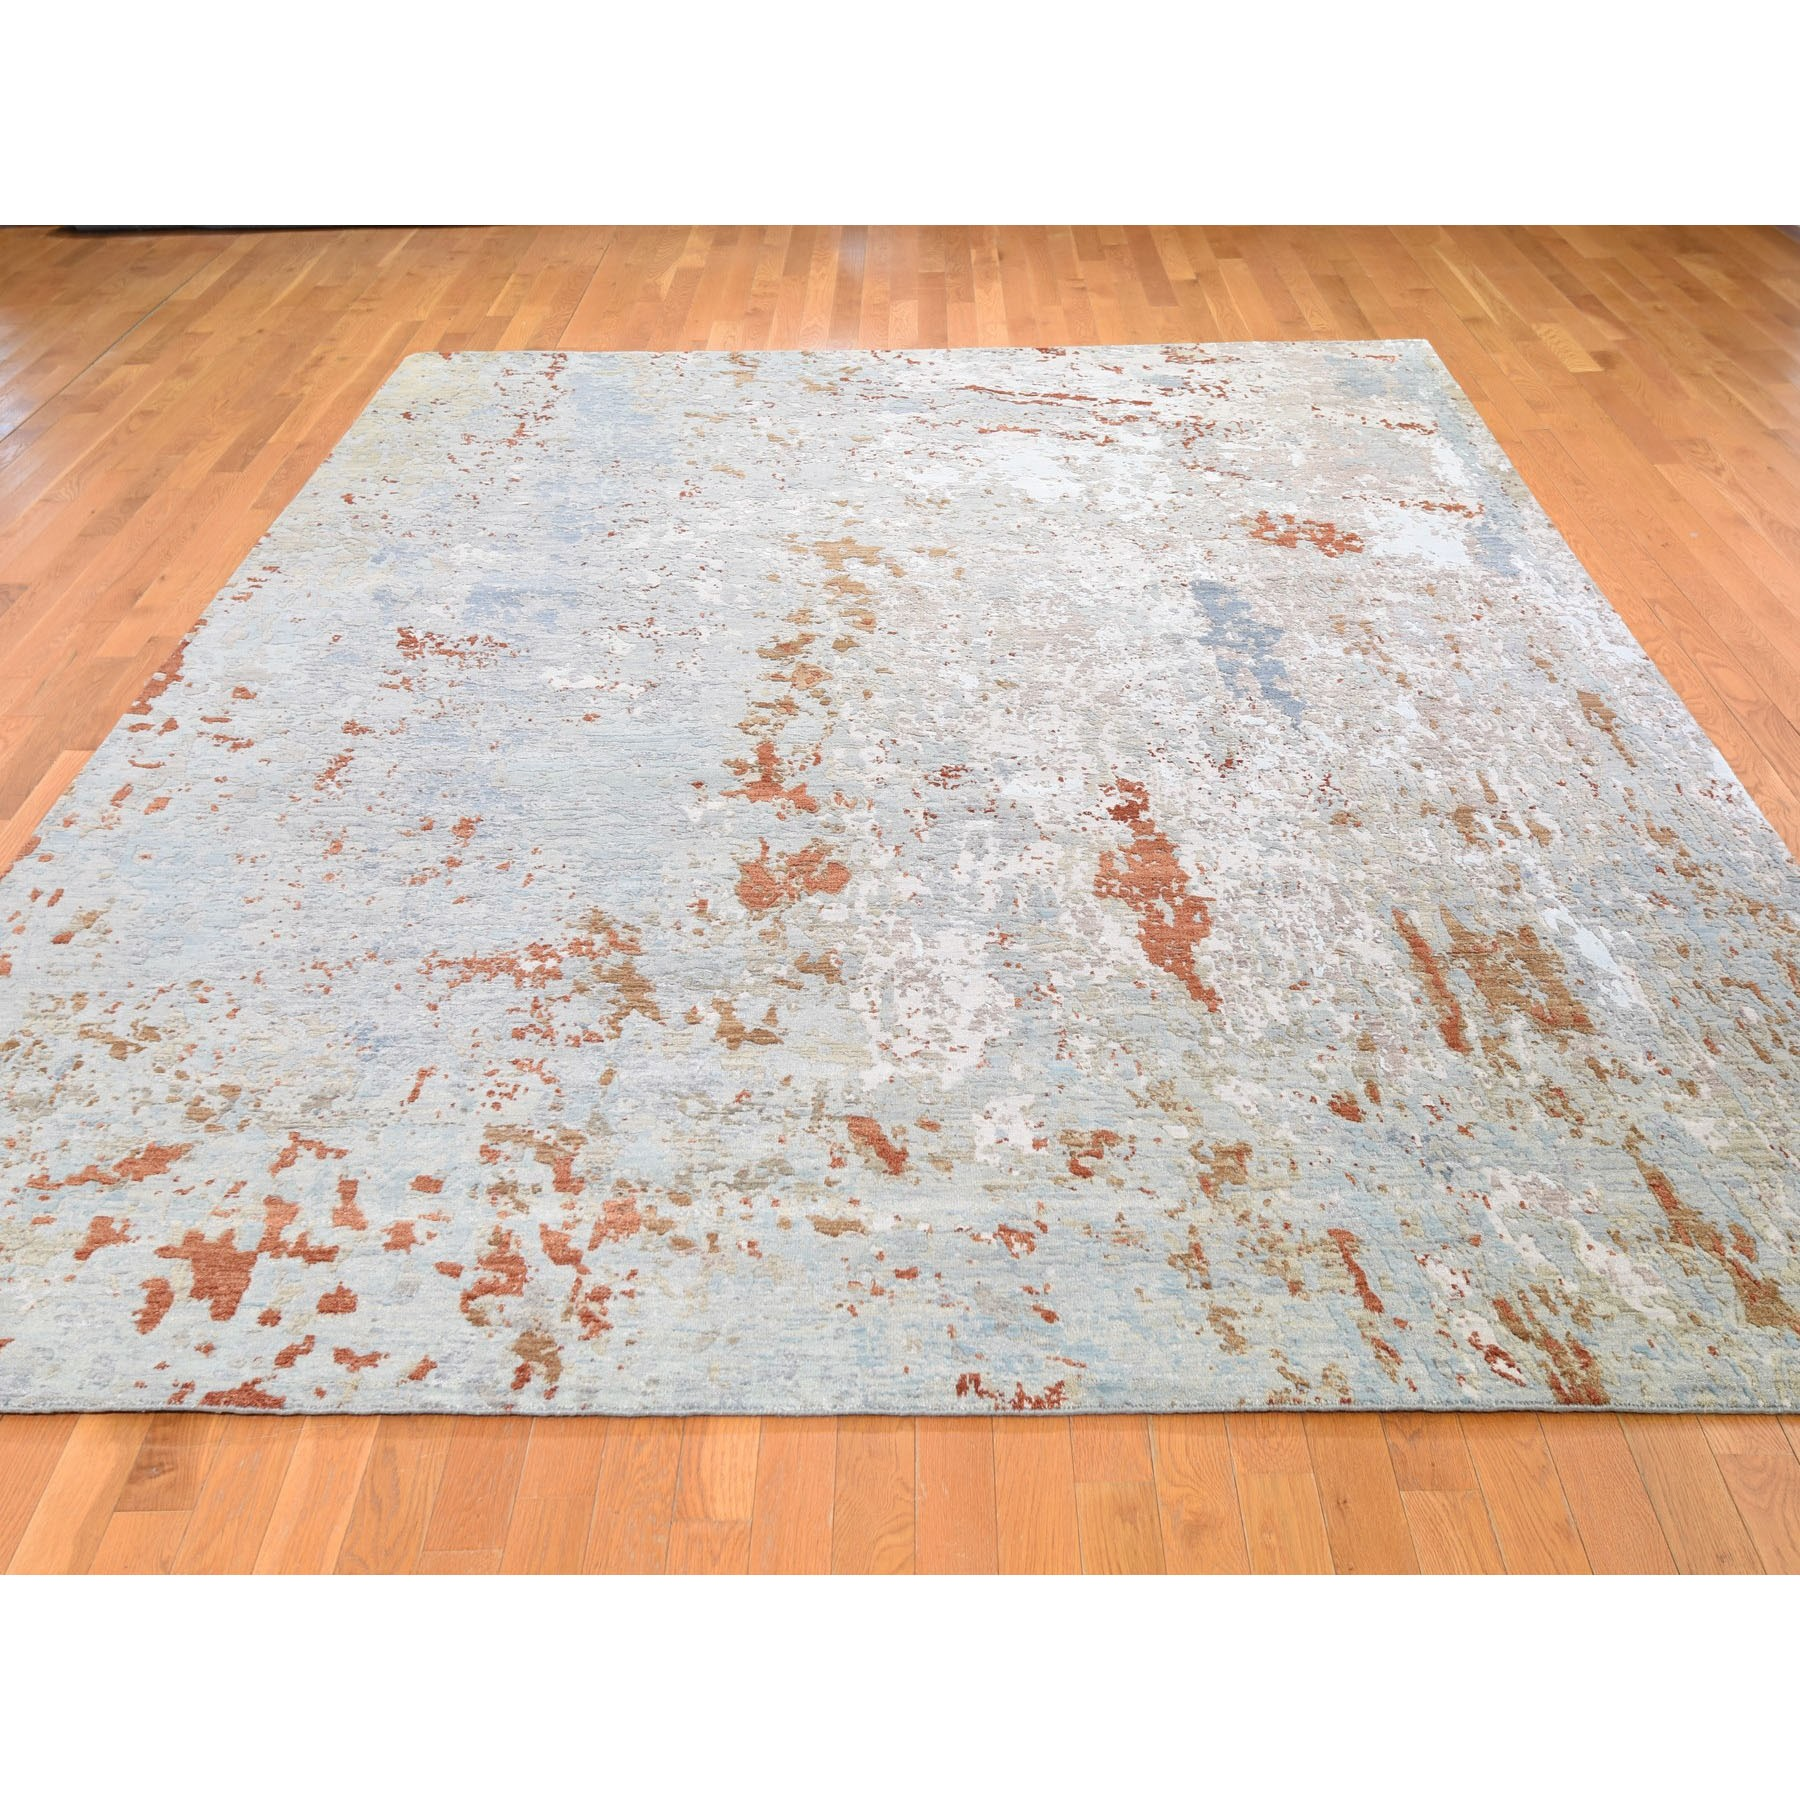 9-x12-2  Hi-Low Pile Abstract Design Denser weave Wool And Silk Hand Knotted Oriental Rug